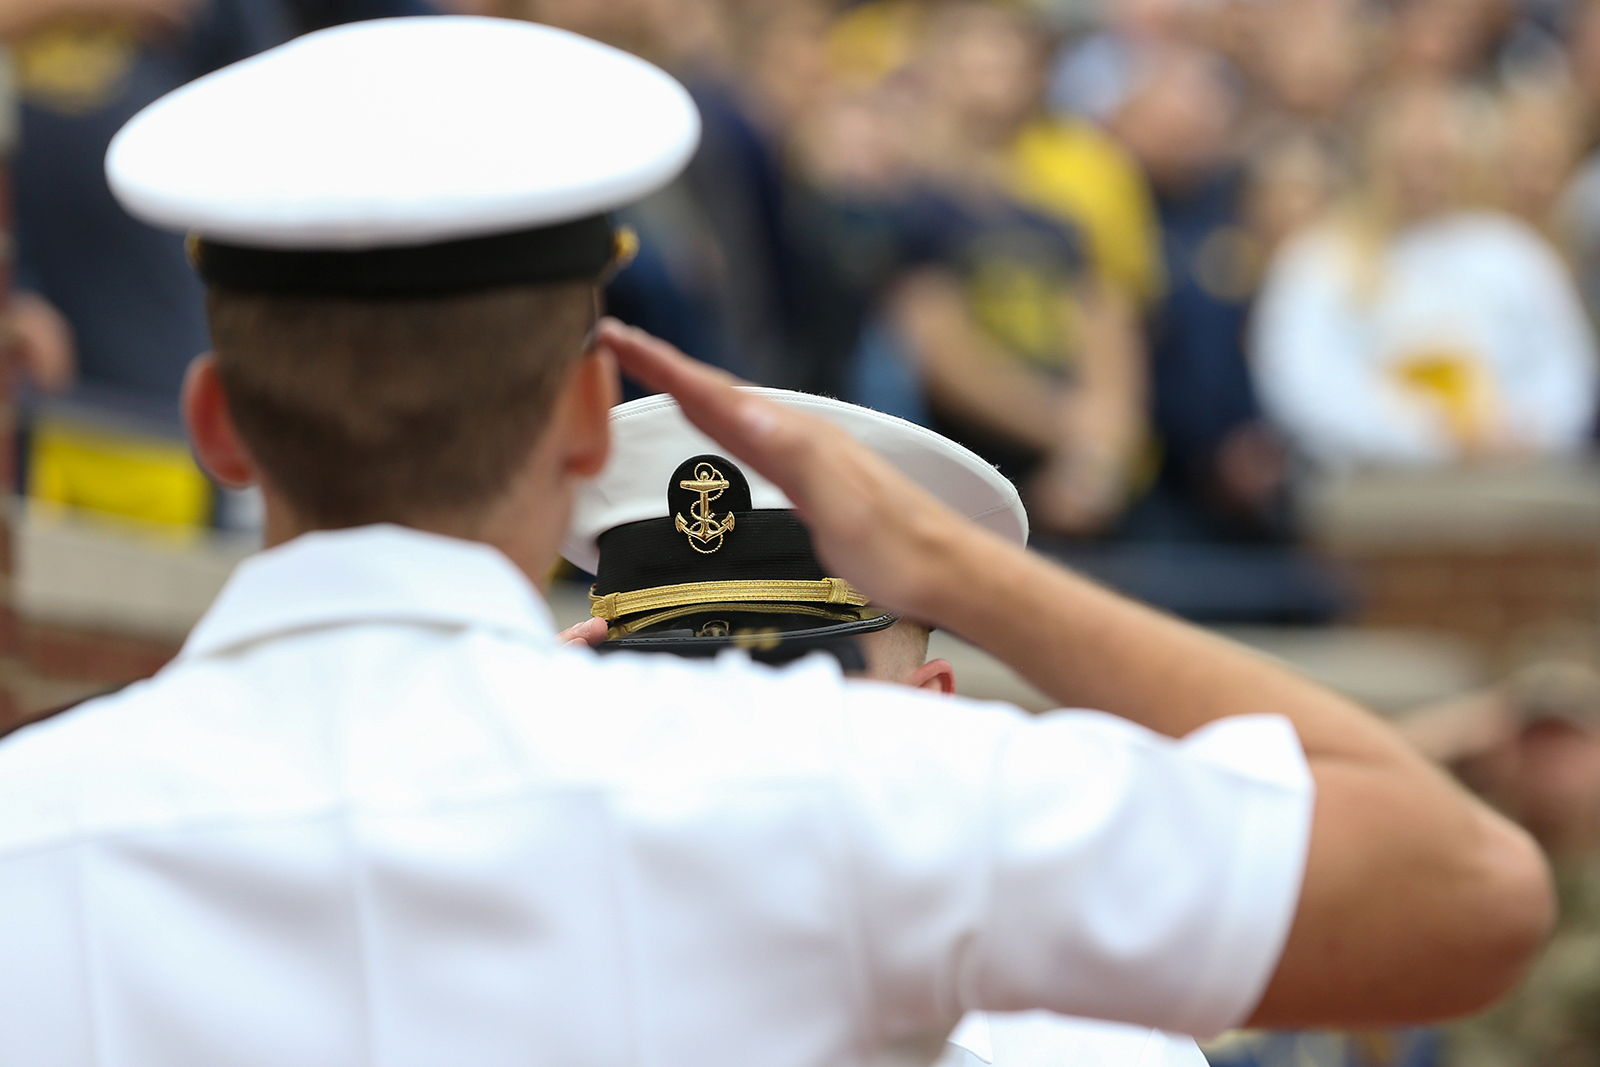 A US Navy officer salutes during the national anthem prior to a college football game at Michigan Stadium in Ann Arbor on September 8, 2018.